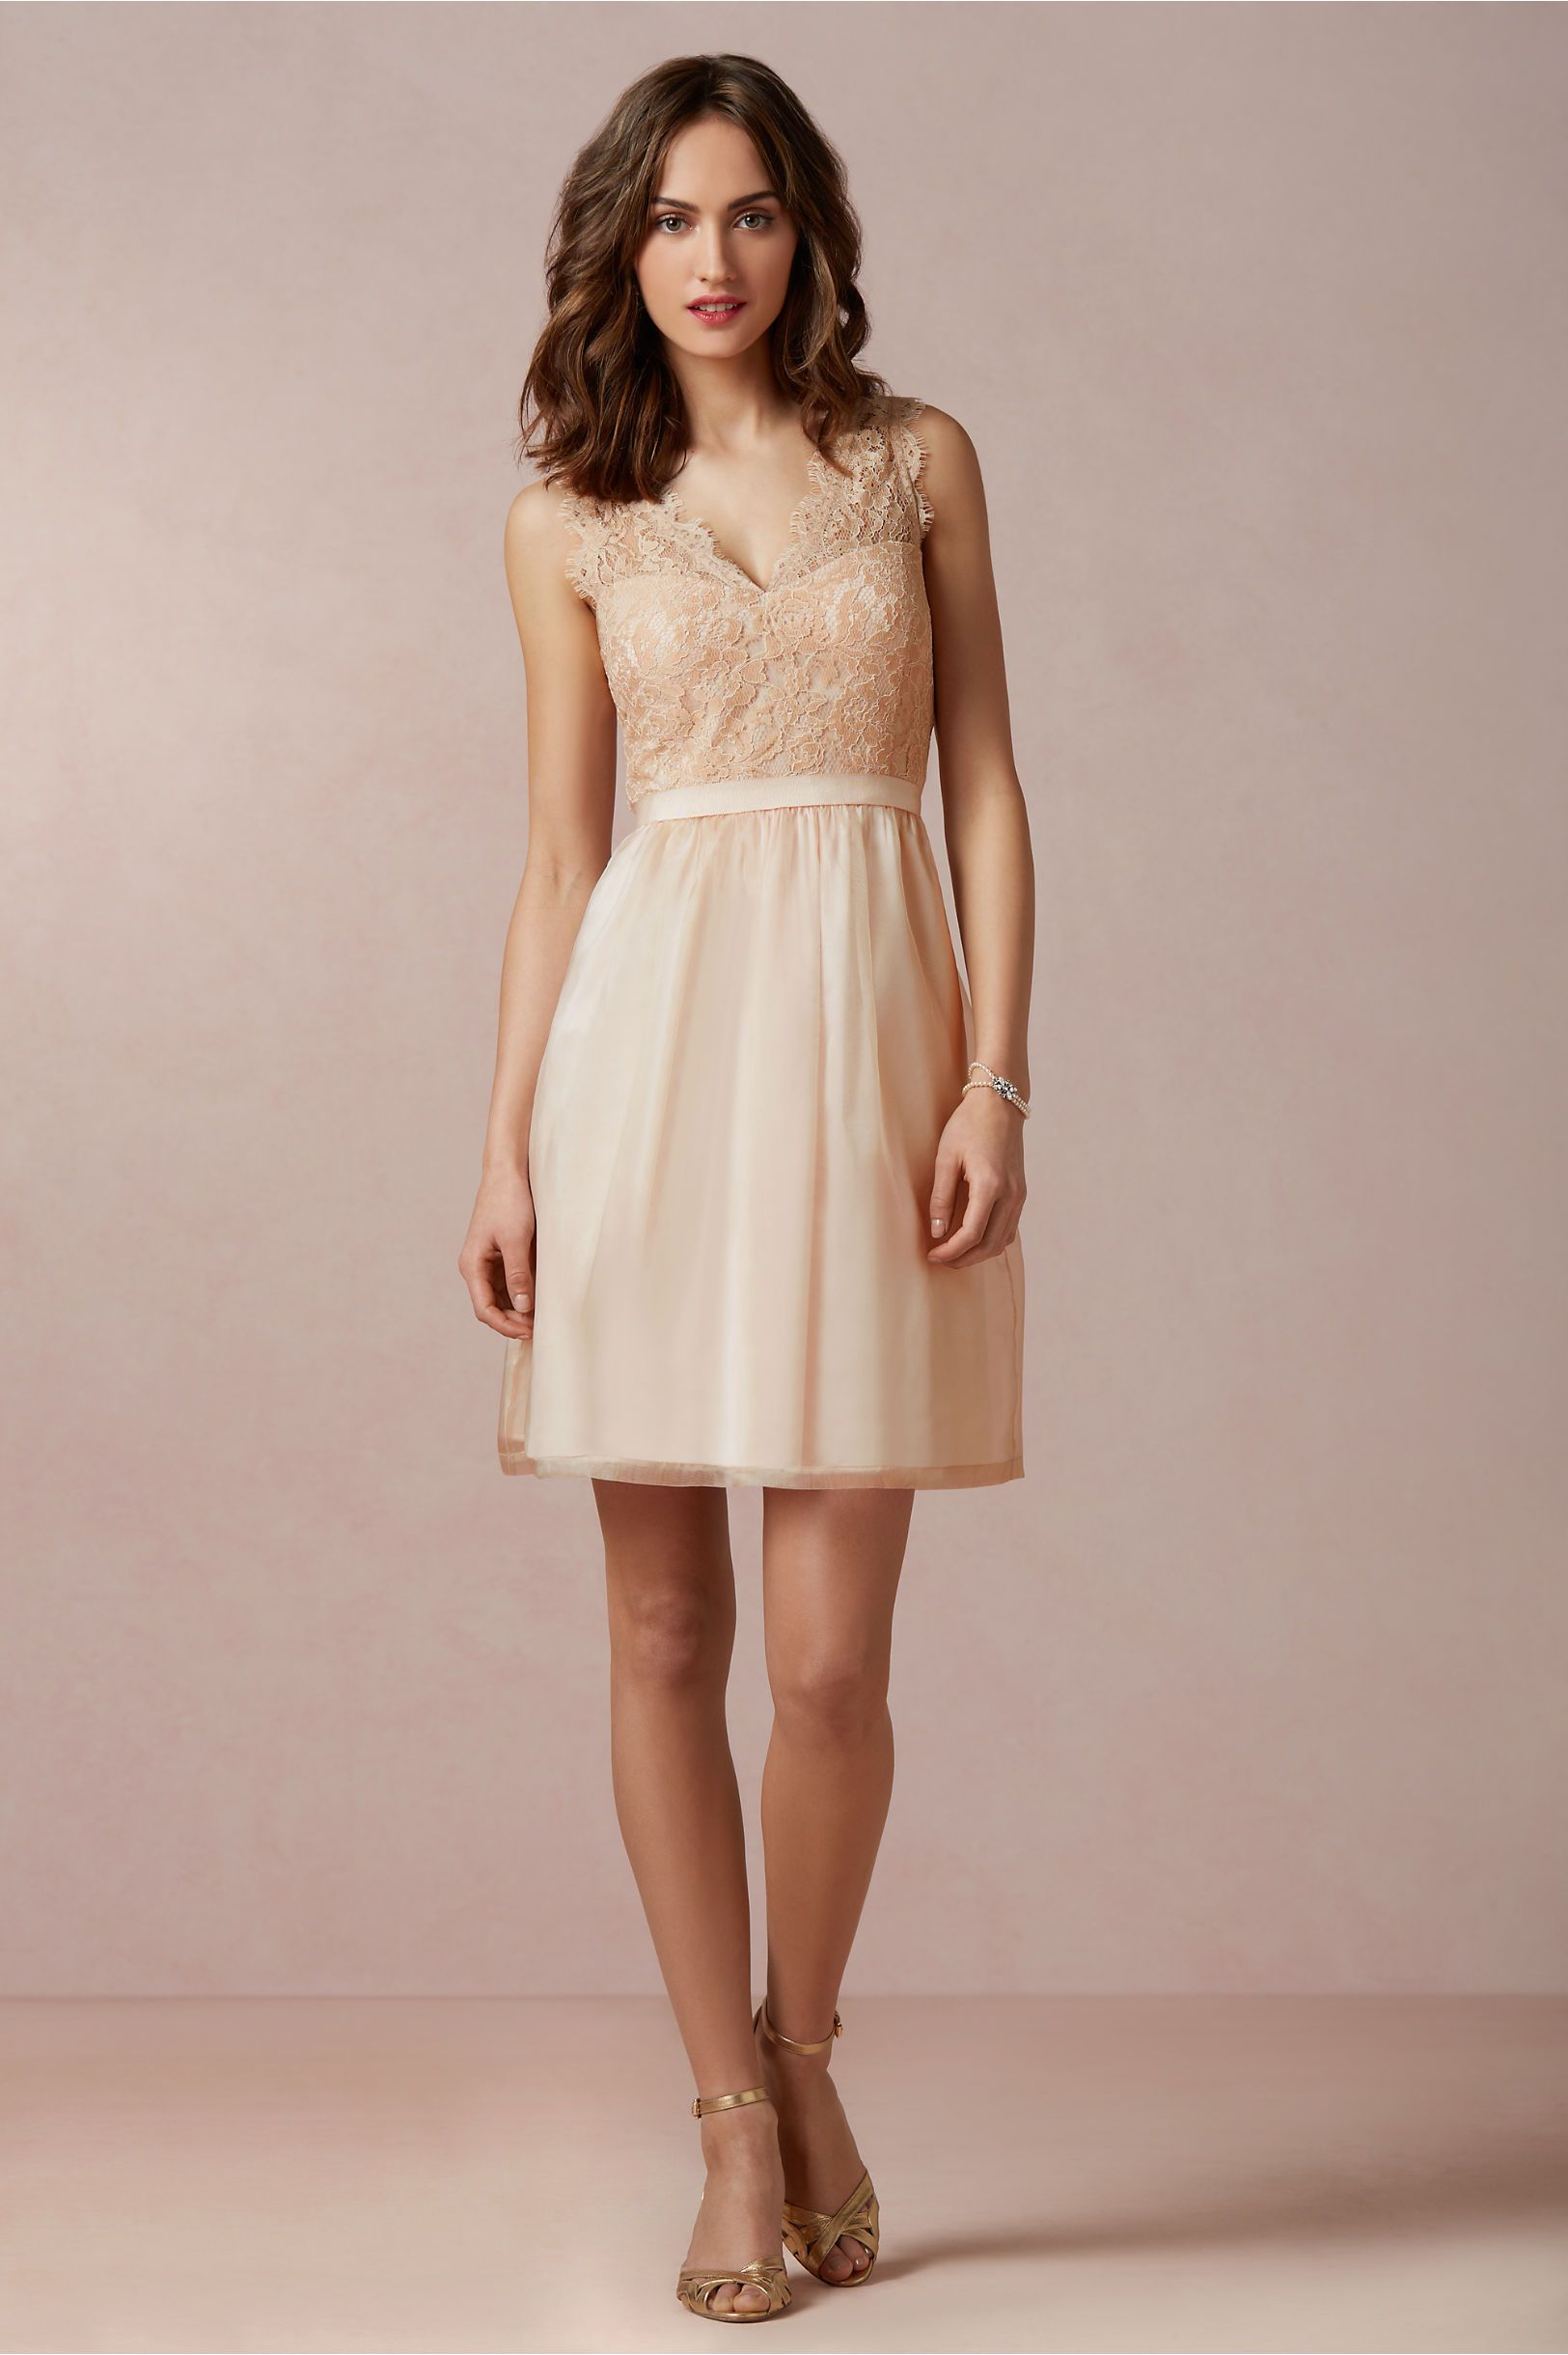 Pink cocktail dress for wedding  Claudine Dress from BHLDN  May be too pink need to see in person